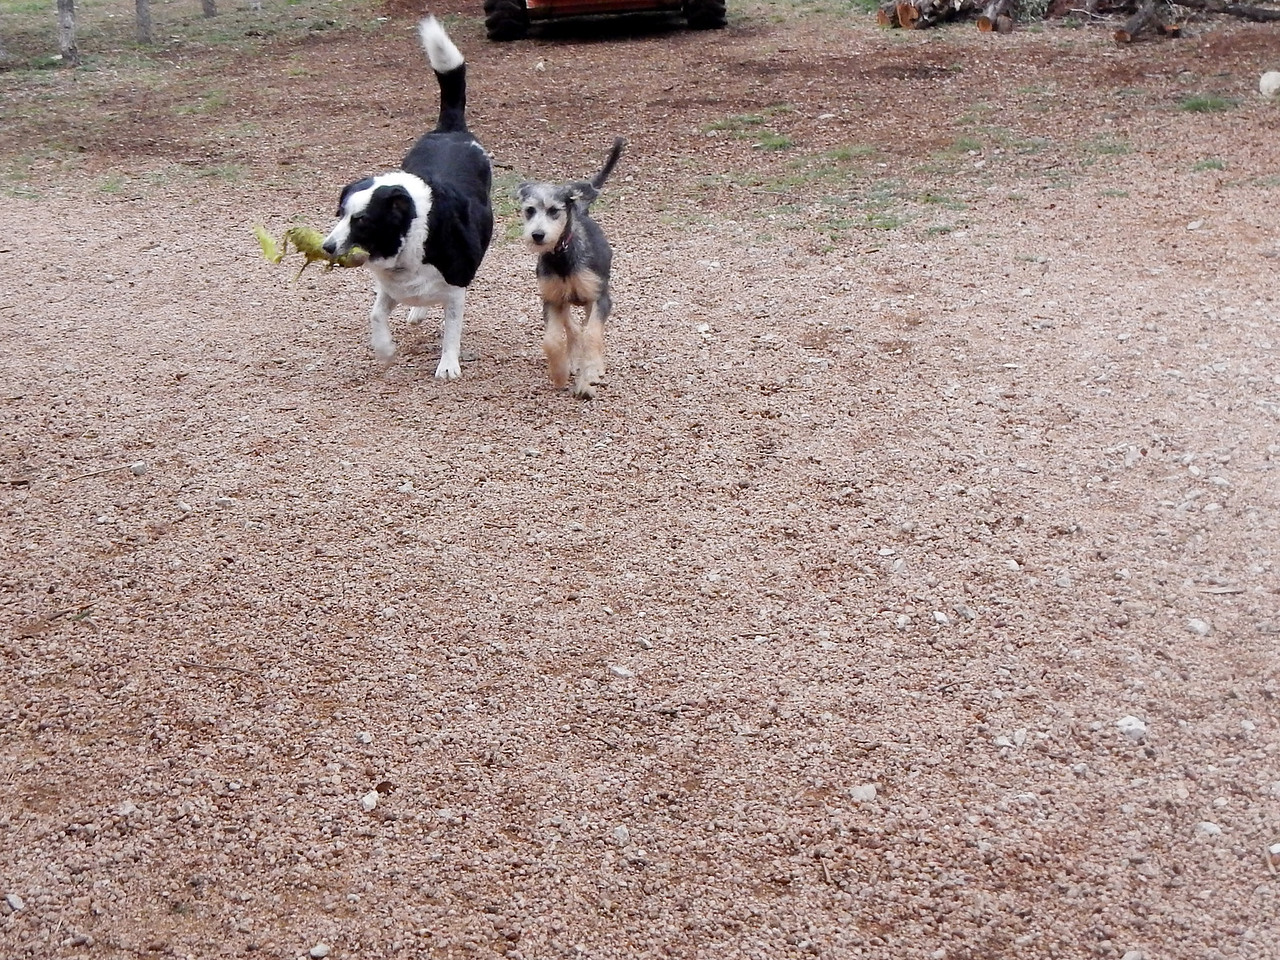 Chester and Linus playing with the ball